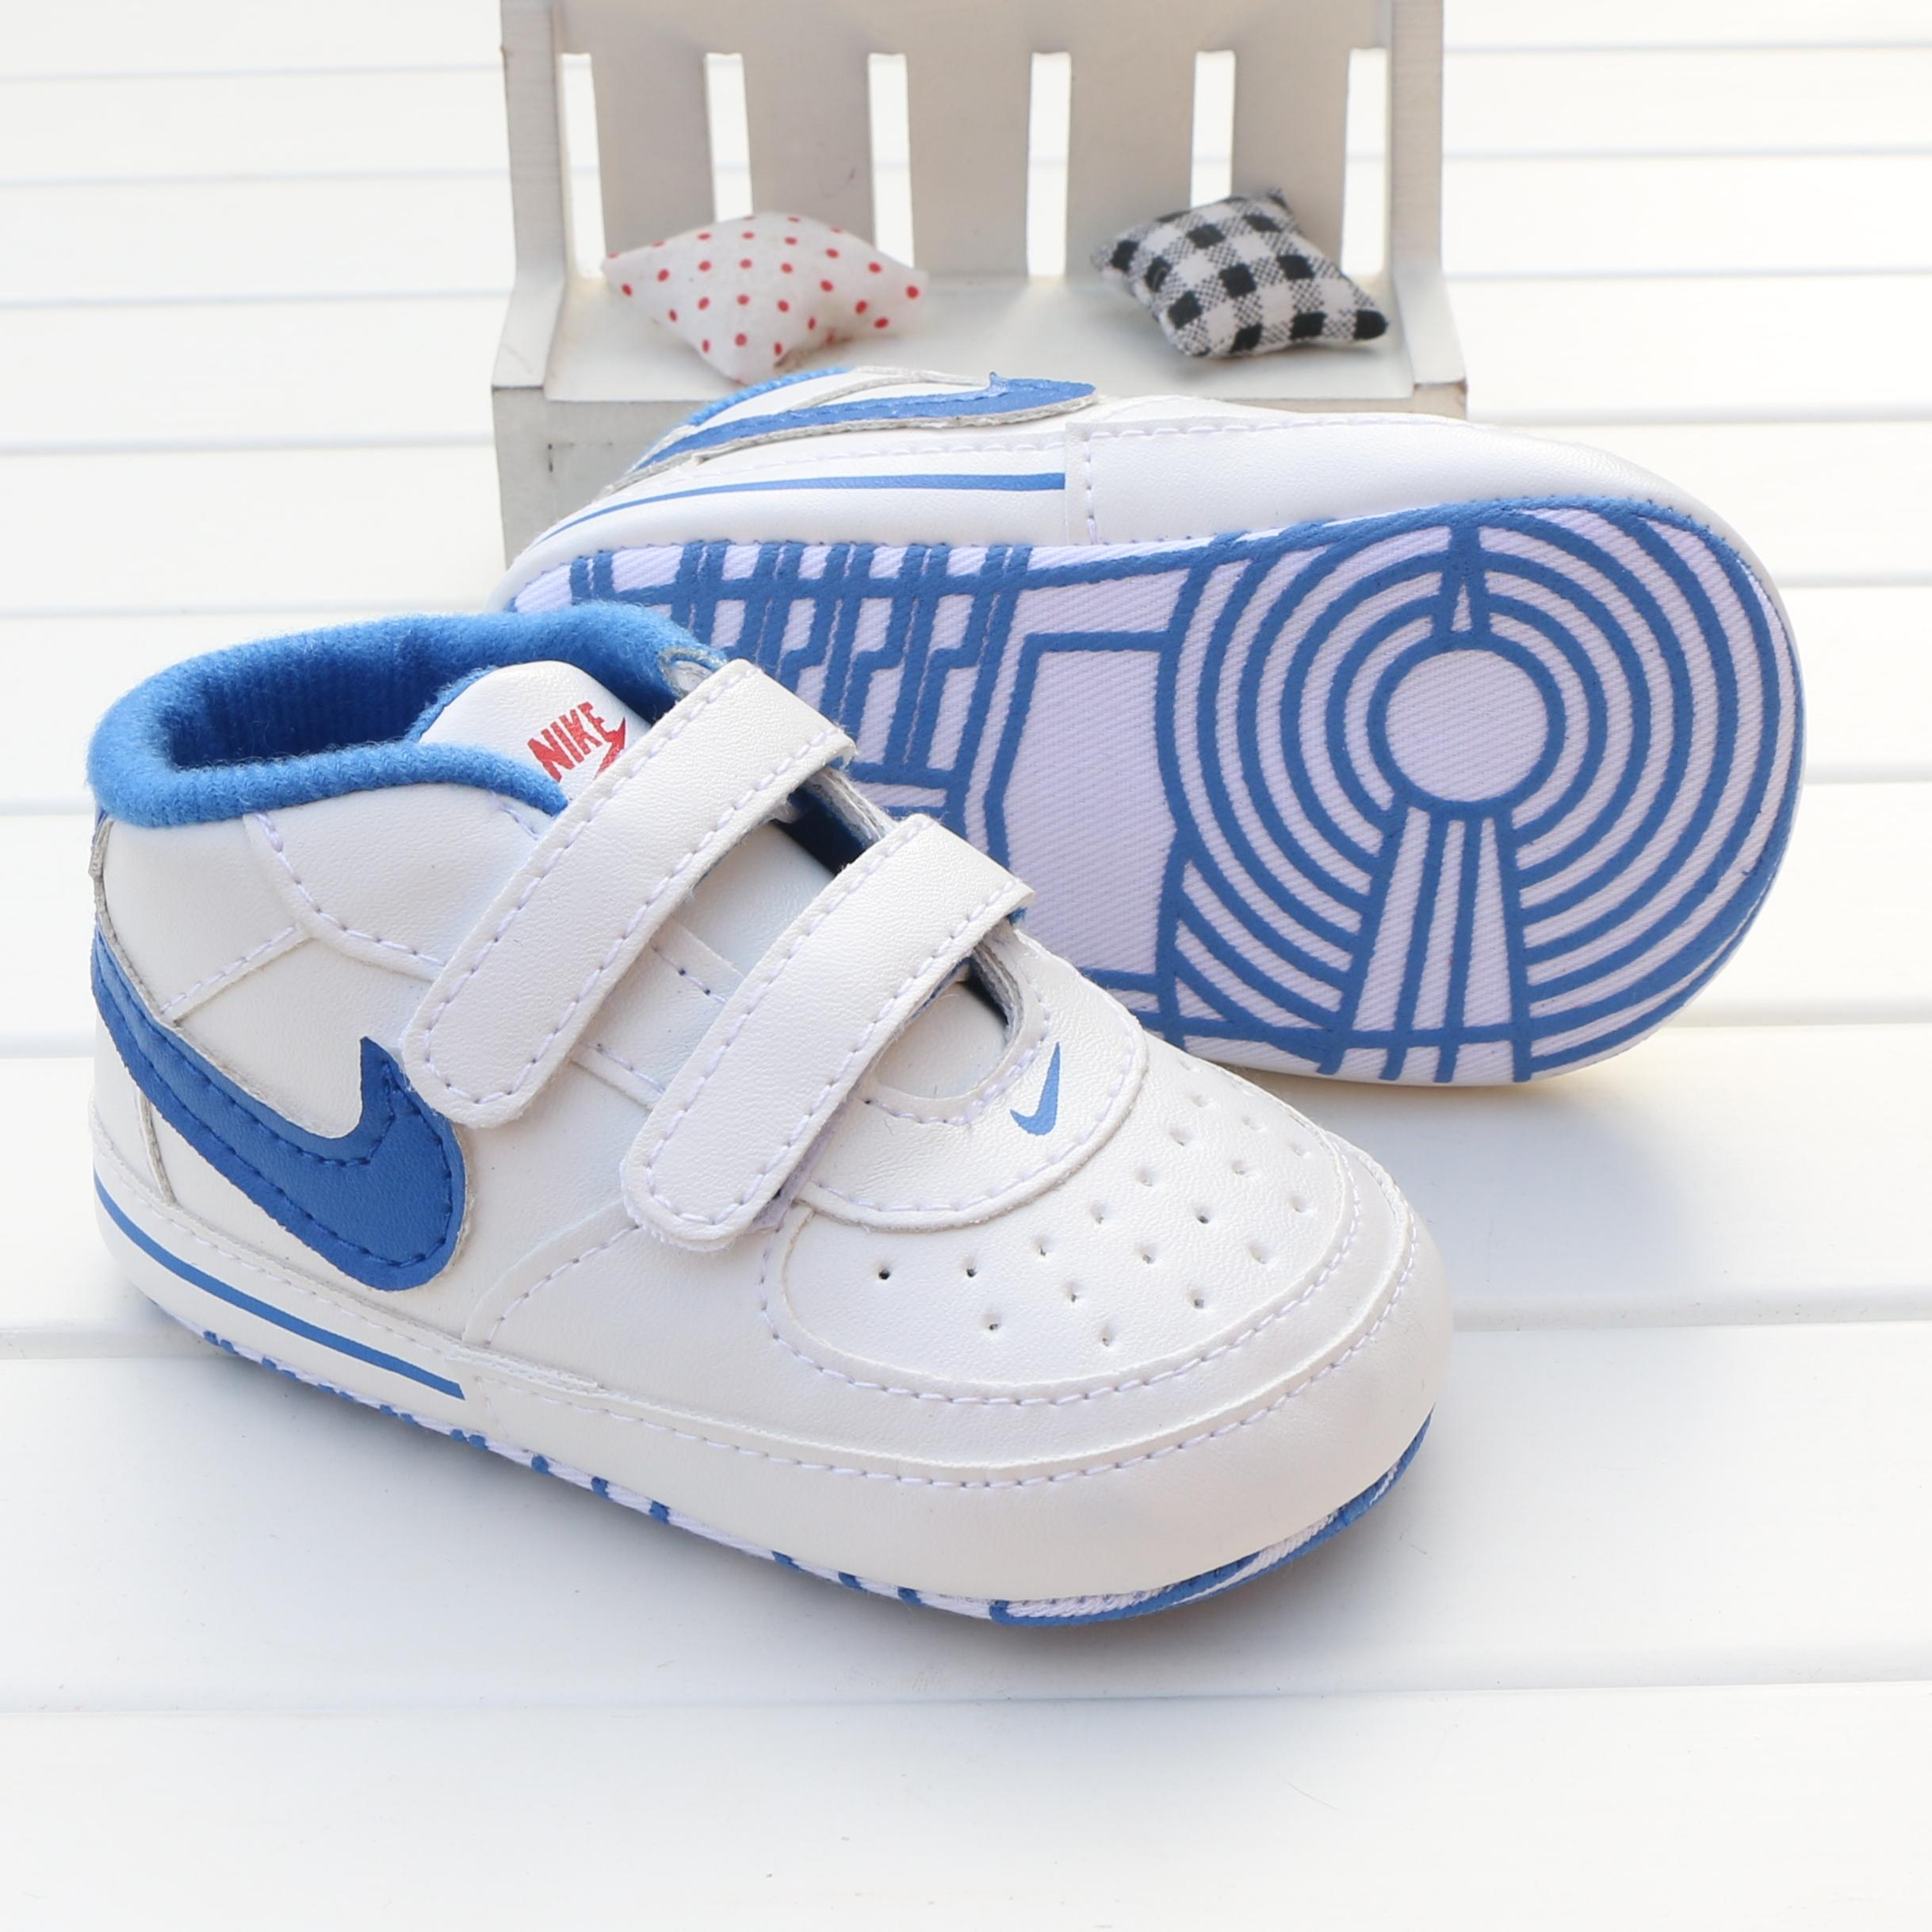 2019 New Autumn Winter Baby Shoes Girls Boy First Walkers Newborn Shoes 11cm 12cm 13cm Shoes First Walkers From Dtysunny2018, $11.17 | DHgate.Com